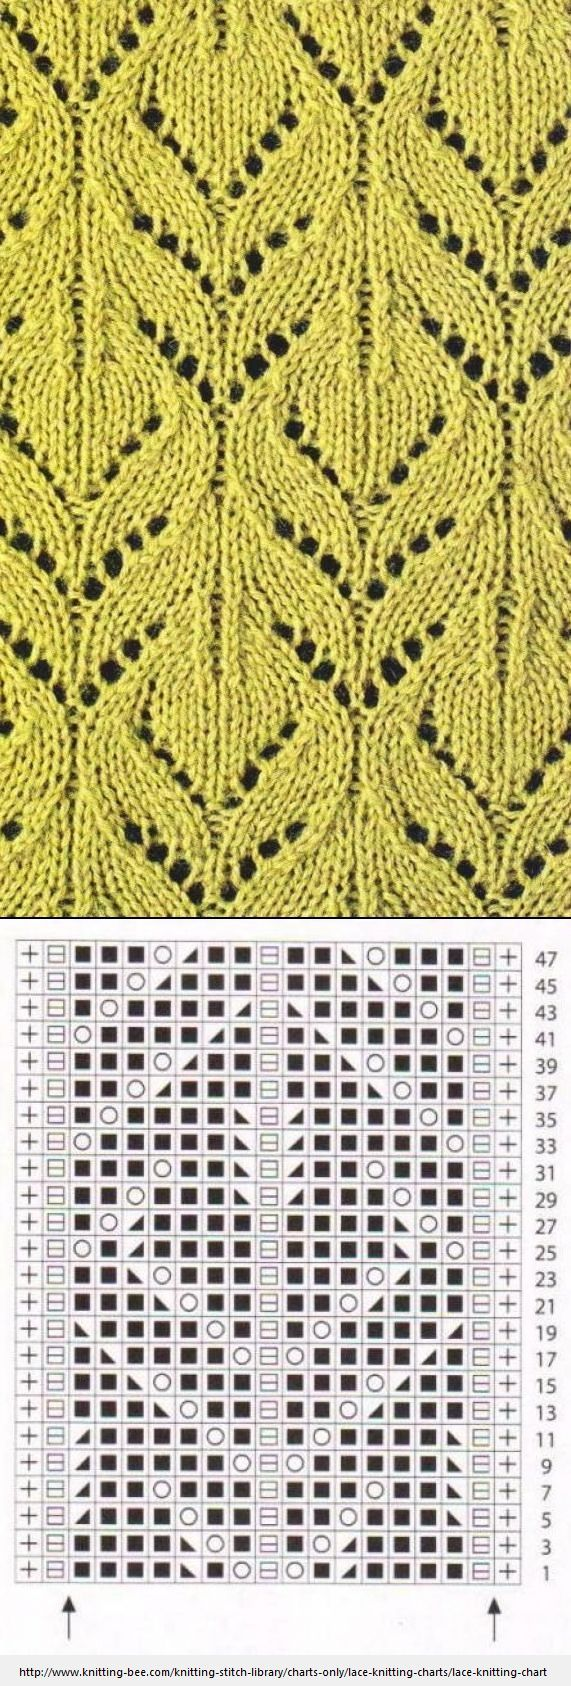 Knitted Lace Pattern : 25+ best ideas about Lace knitting patterns on Pinterest Lace knitting, Lac...